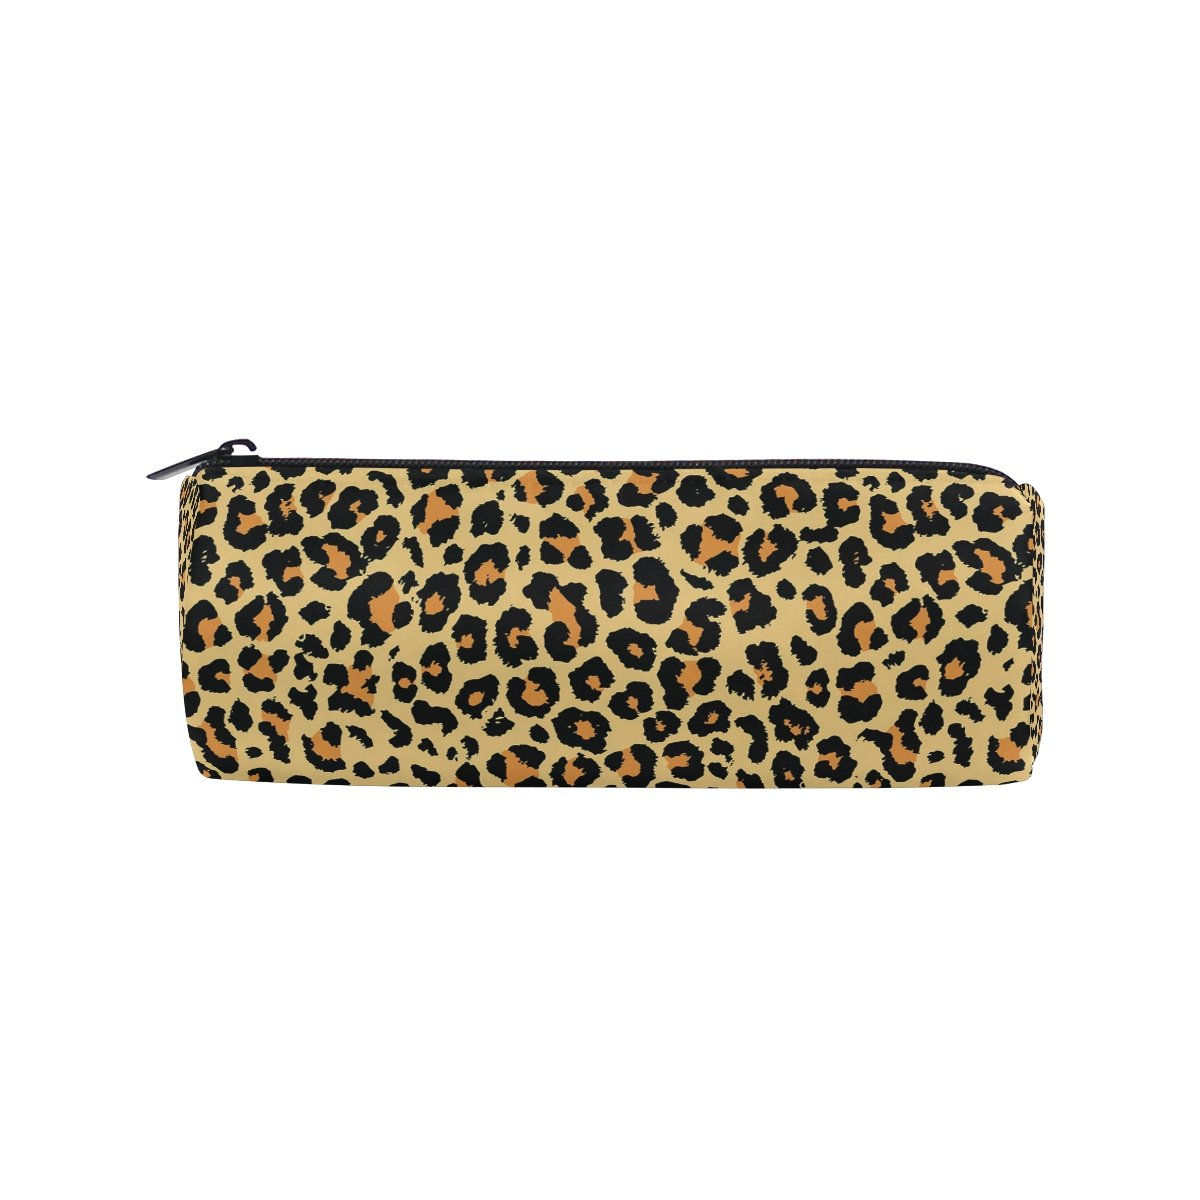 ALAZA Yellow Leopard Zipper Pencil Pen Case Pouch Bag for Girls Kids School Student Stationery Office Supplies,Animal Print Women Cosmetic Makeup Bag